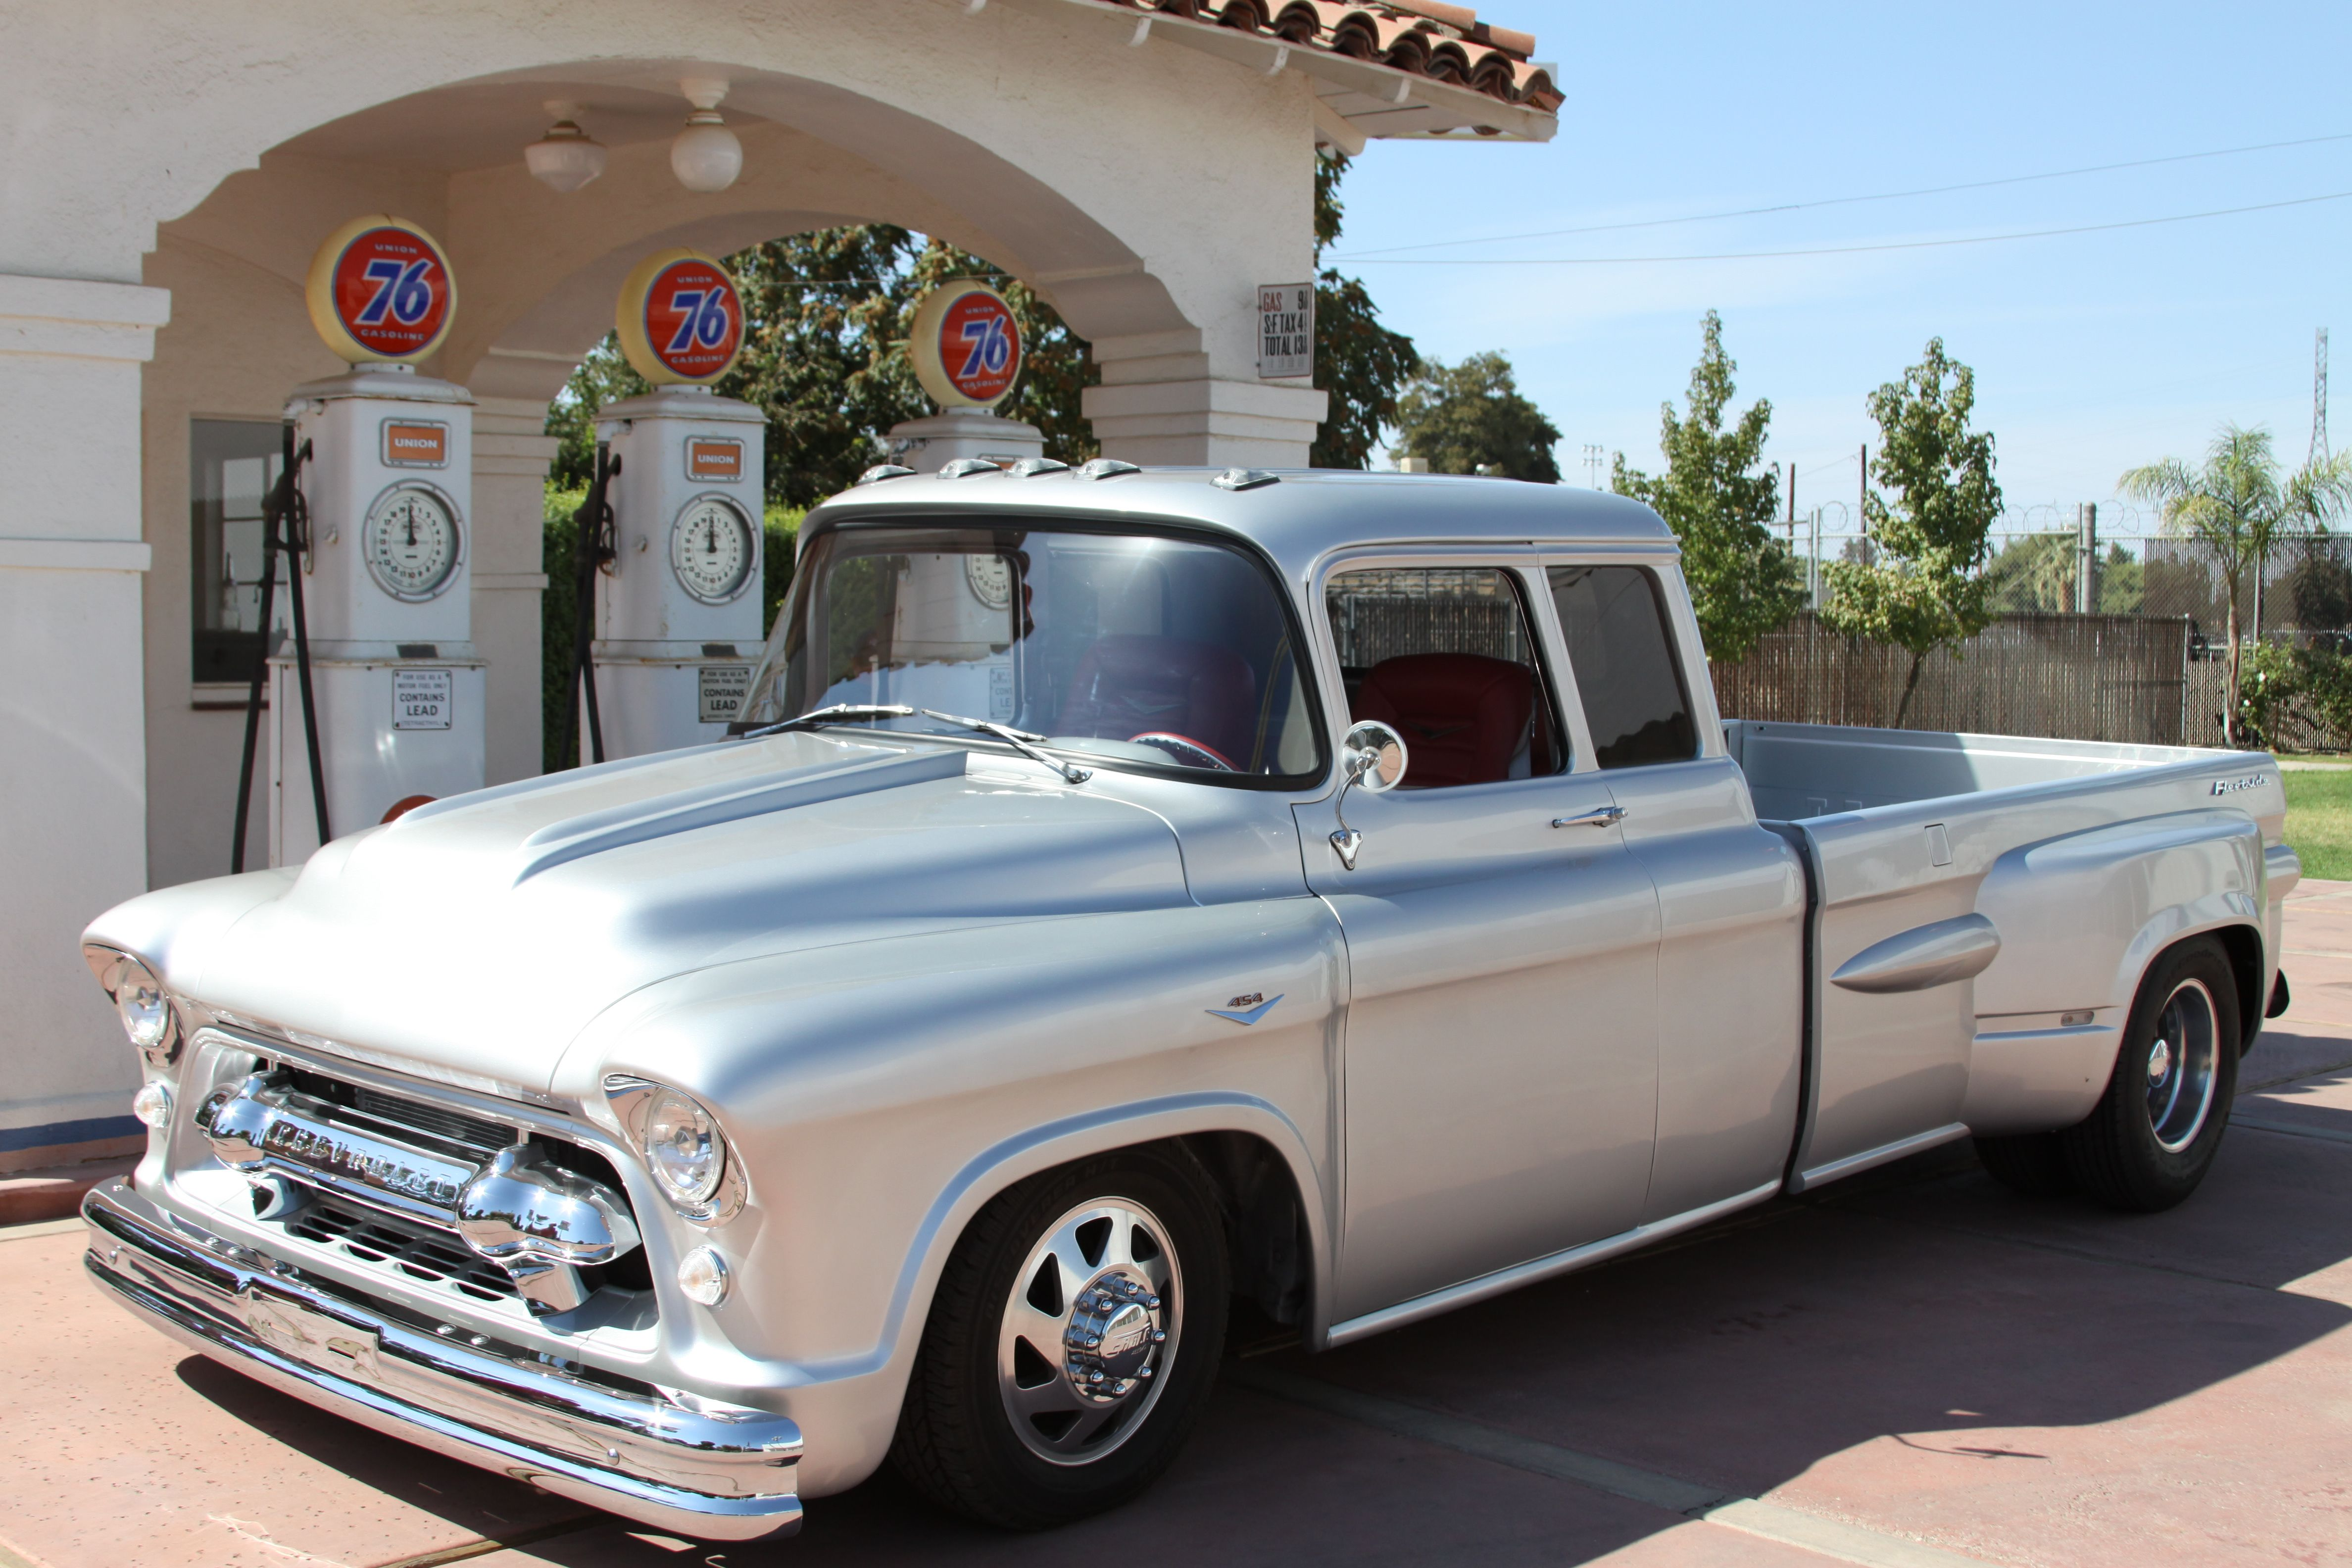 57 chevy pickup truck 1 ton extended cab dually with 454 sitting in front of the vintage union 76 gas pumps at the kern county museum in bakersfield  [ 4752 x 3168 Pixel ]